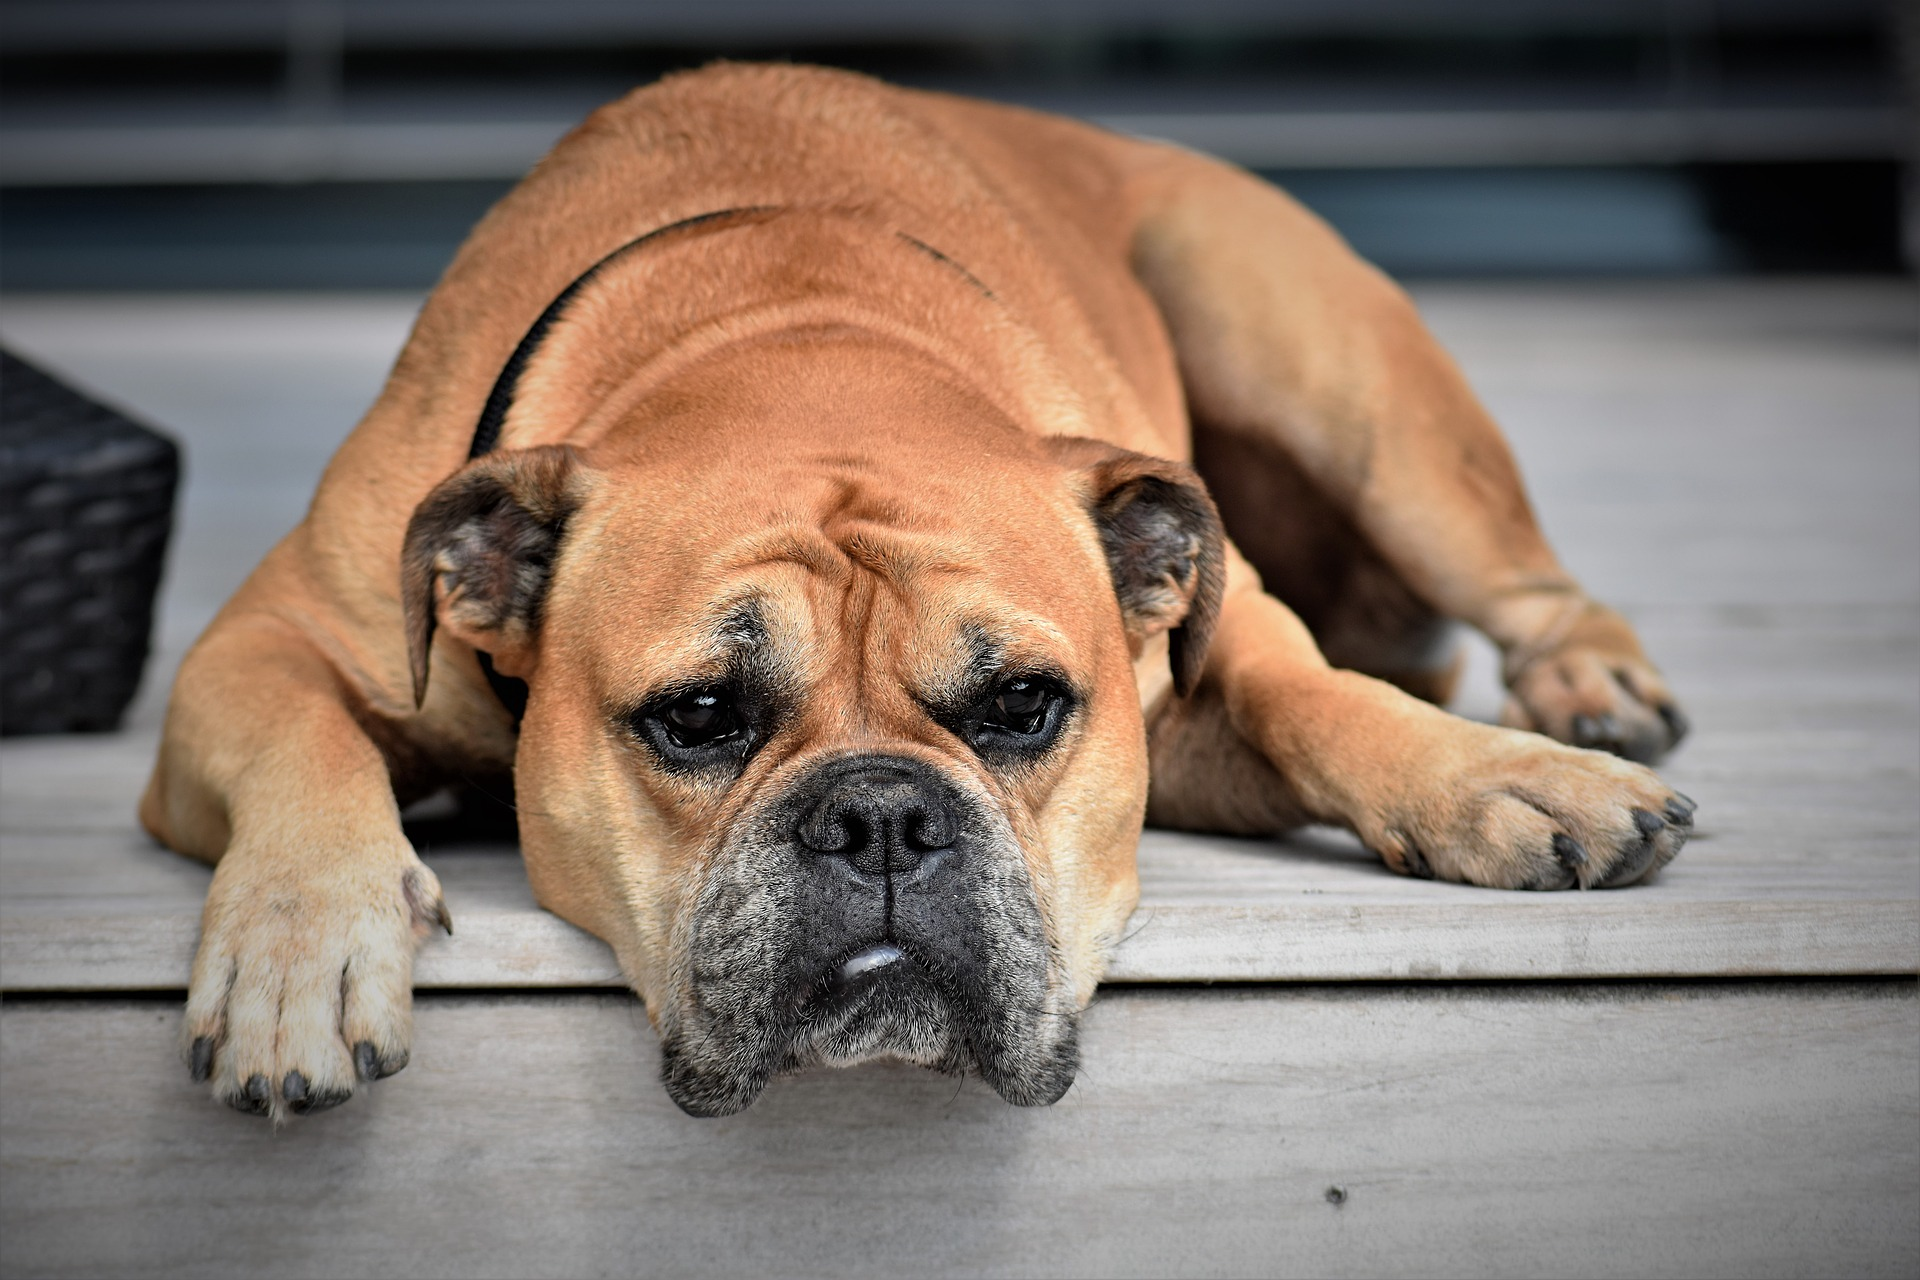 Calls for more control orders in animal cruelty cases